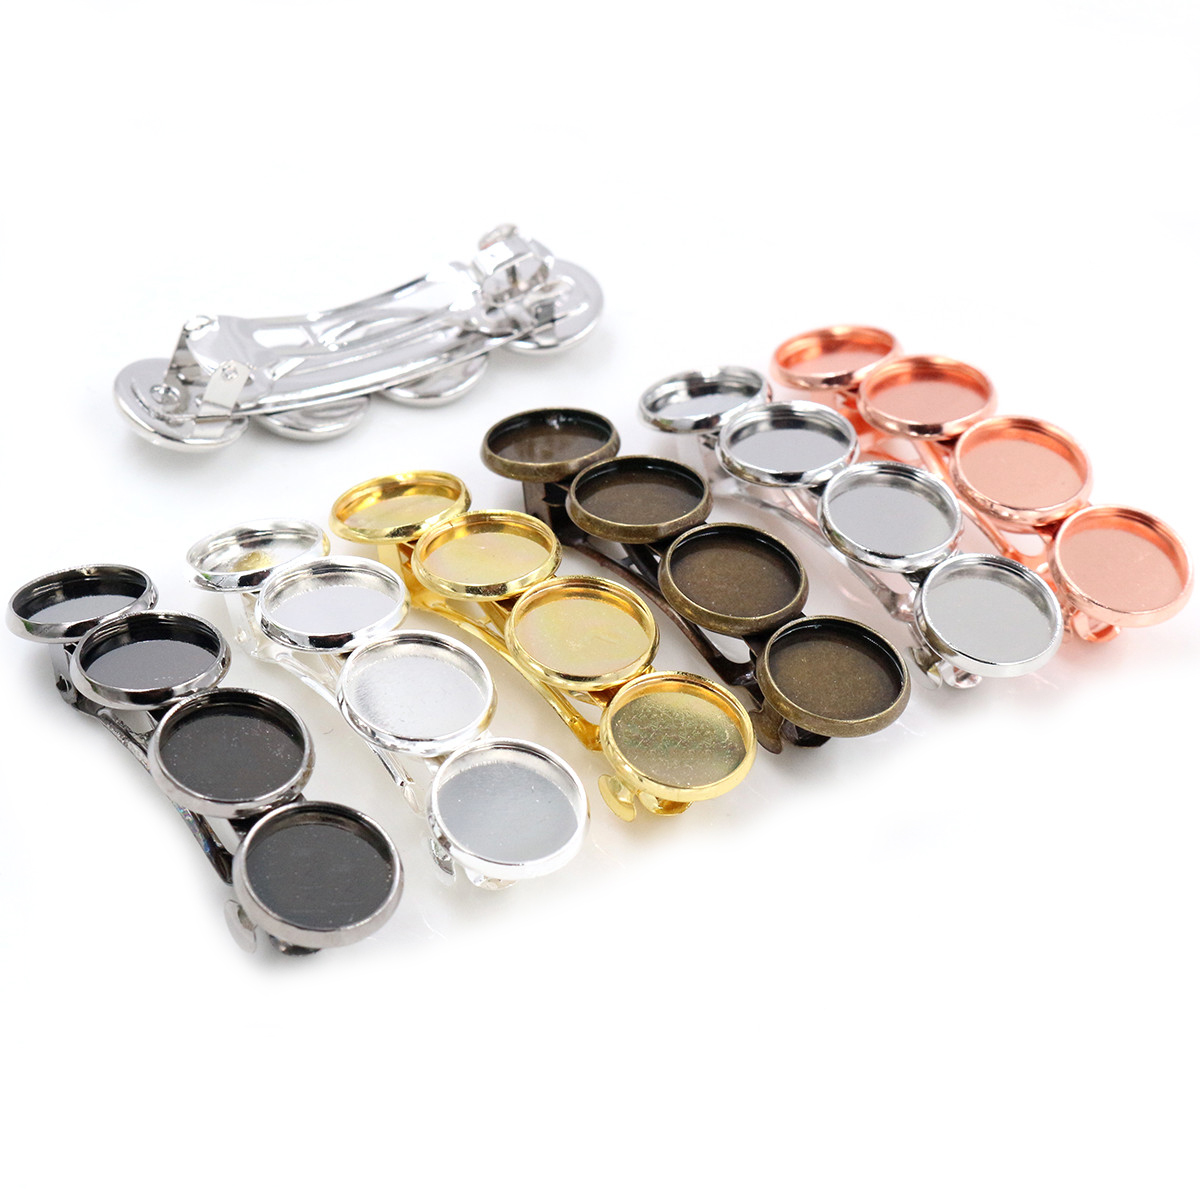 5pcs 12mm With 4 Cameo High Quality Bronze Silver Plated 6 Colors Copper Material Hairpin Hair Clips Base Setting Cabochon Cameo